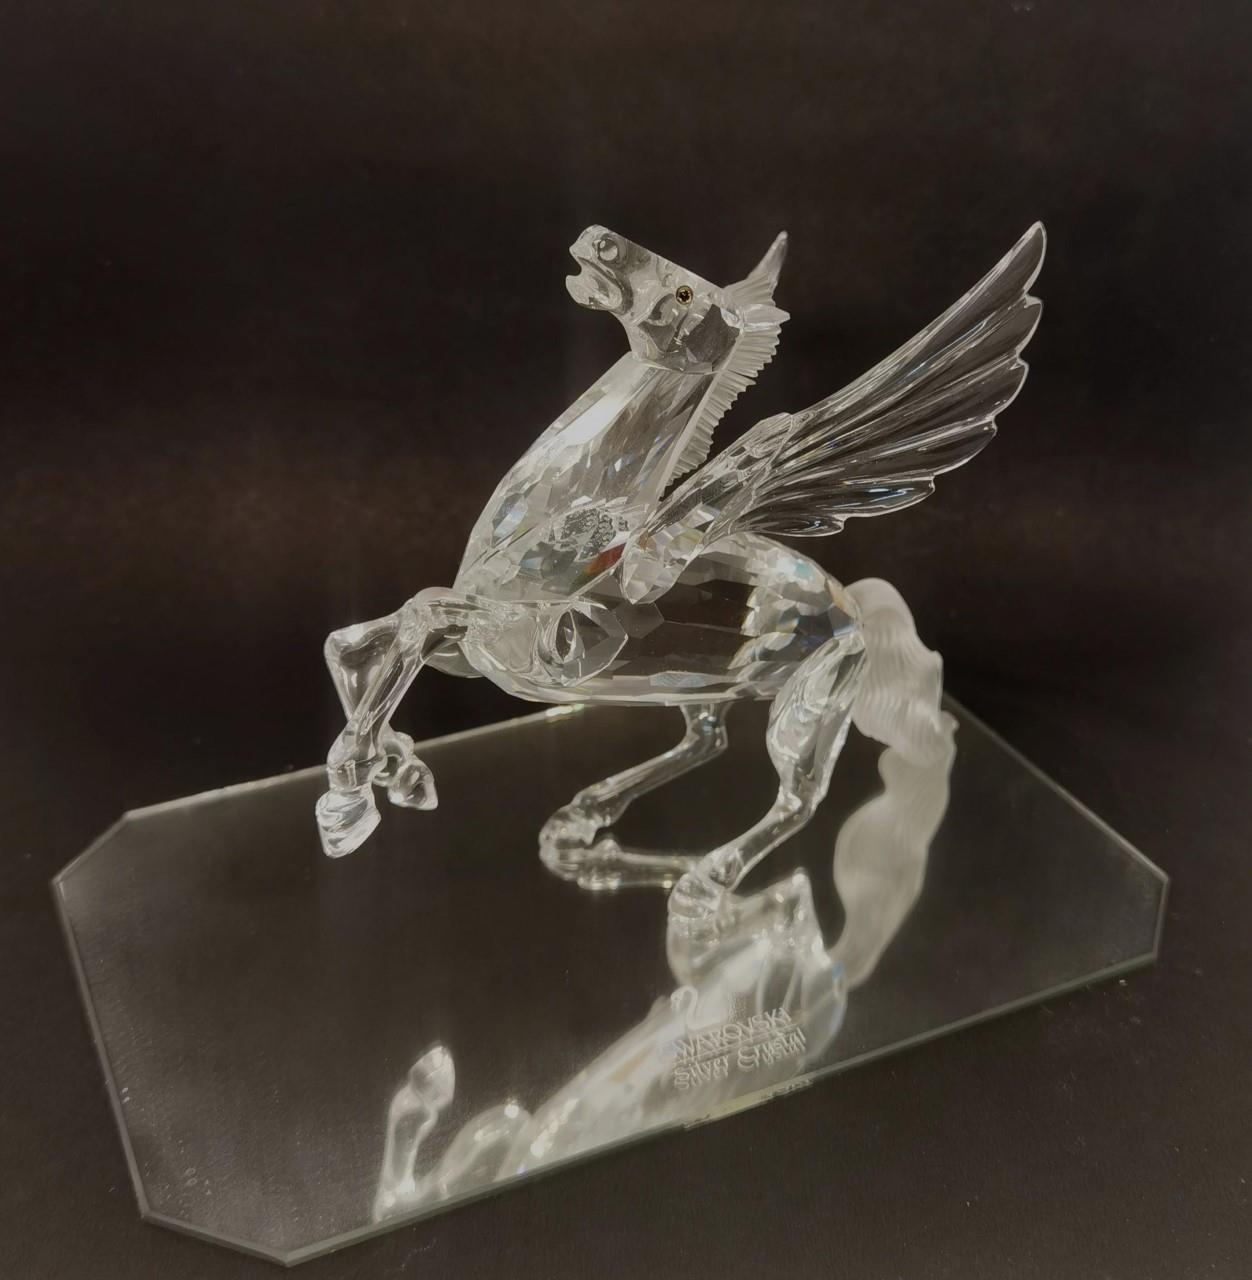 A Swarovski Crystal Annual Edition 1998 'Fabulous Creatures - The Pegasus' A/F with box and